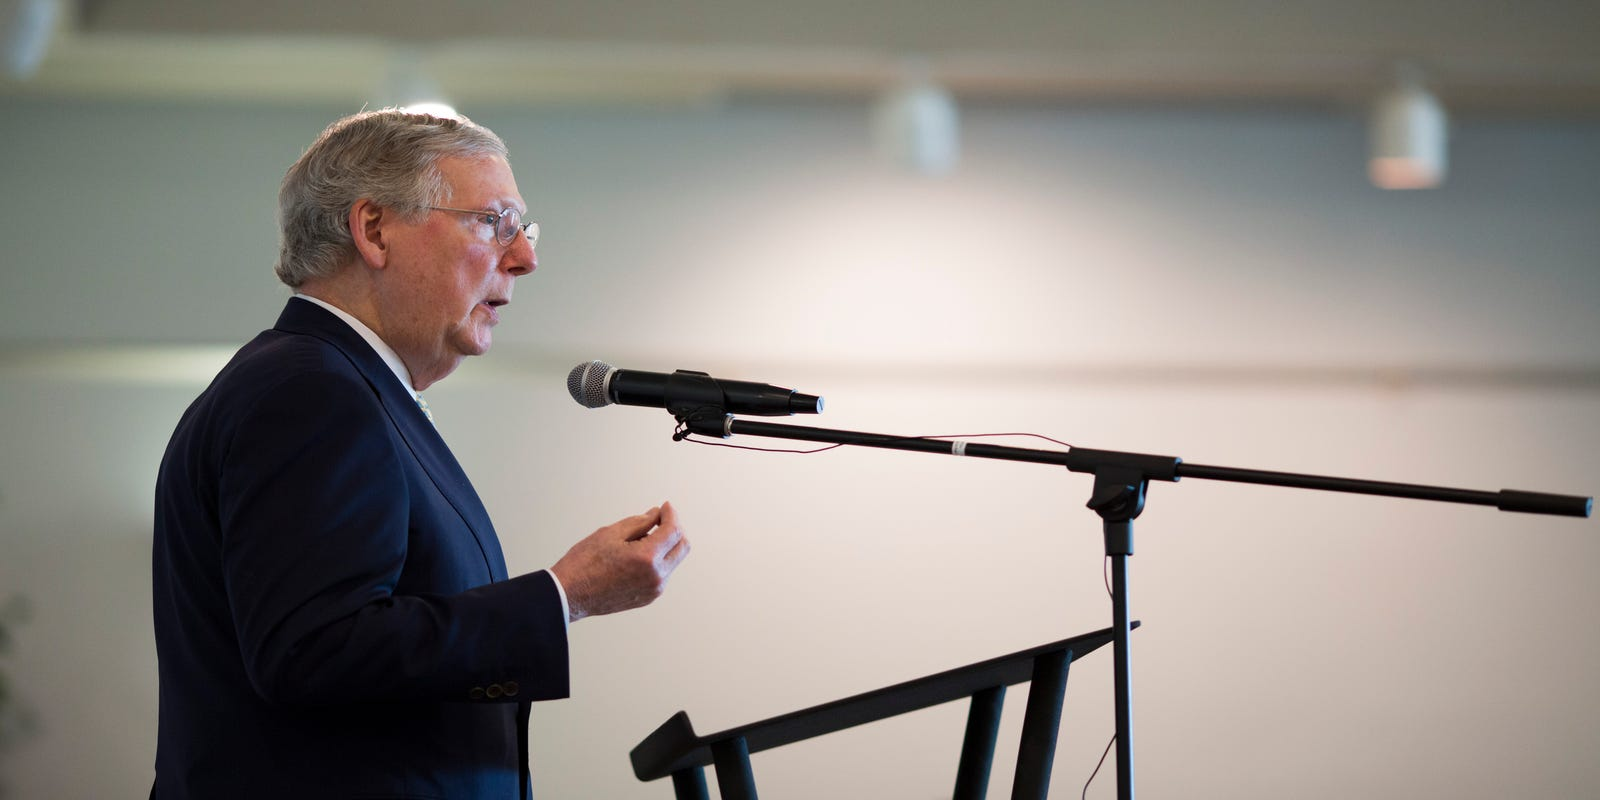 Mitch McConnell: We paid for 'sin of slavery' by electing Obama